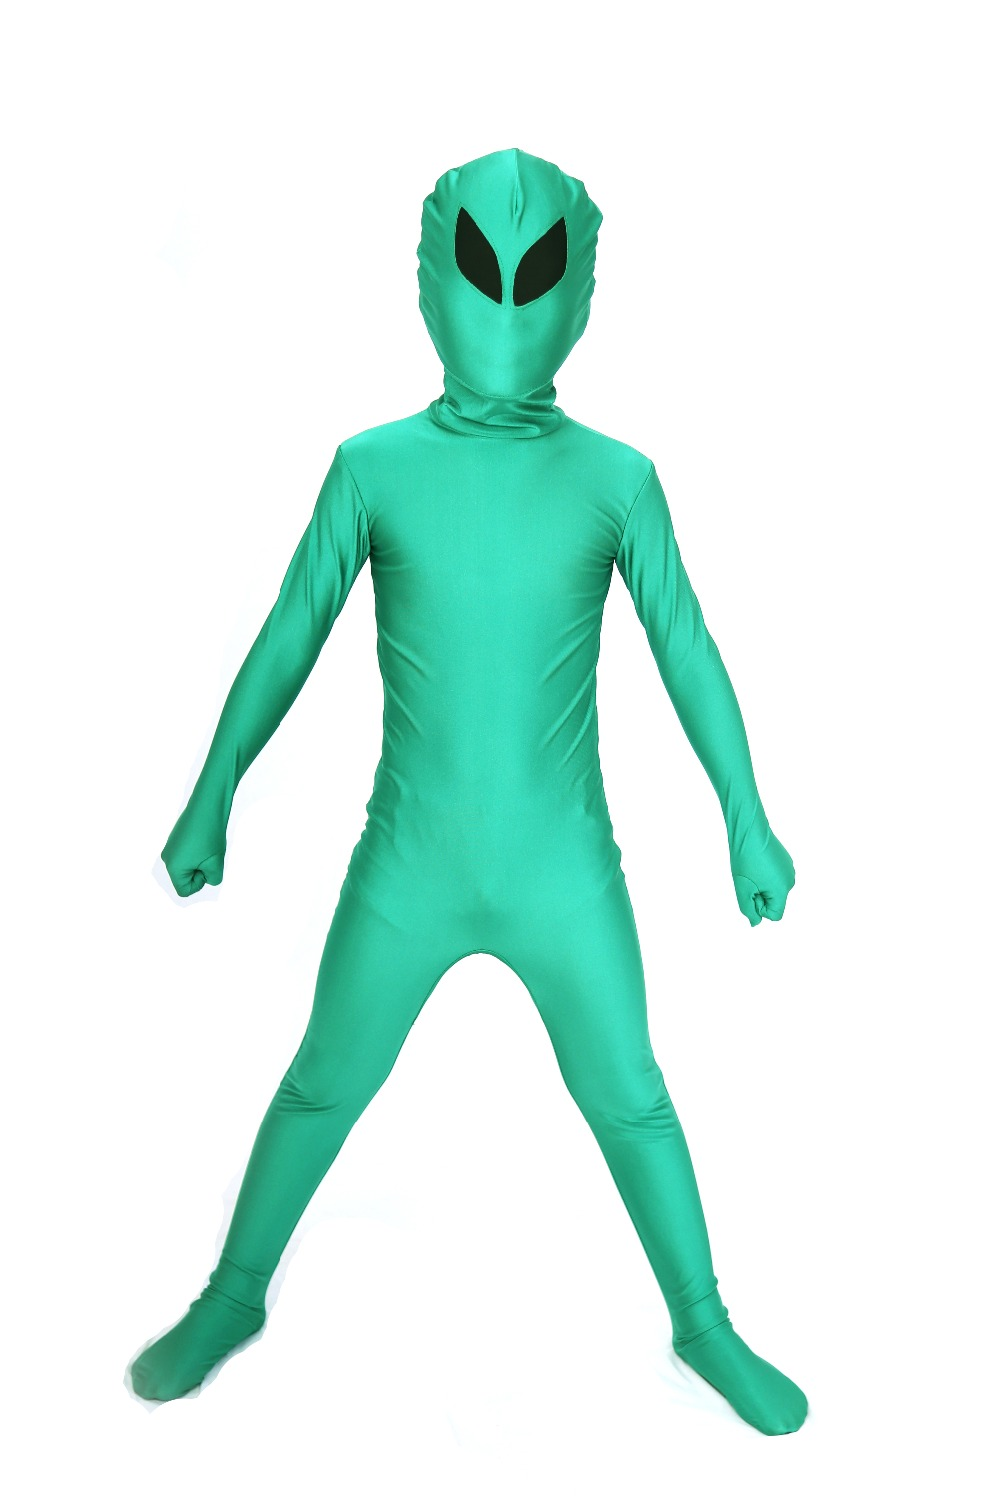 Kids Alien Full Body Suit Child Green Alien Spandex Lycra Zentai Bodysuit Green and Black Stage Performance Costume